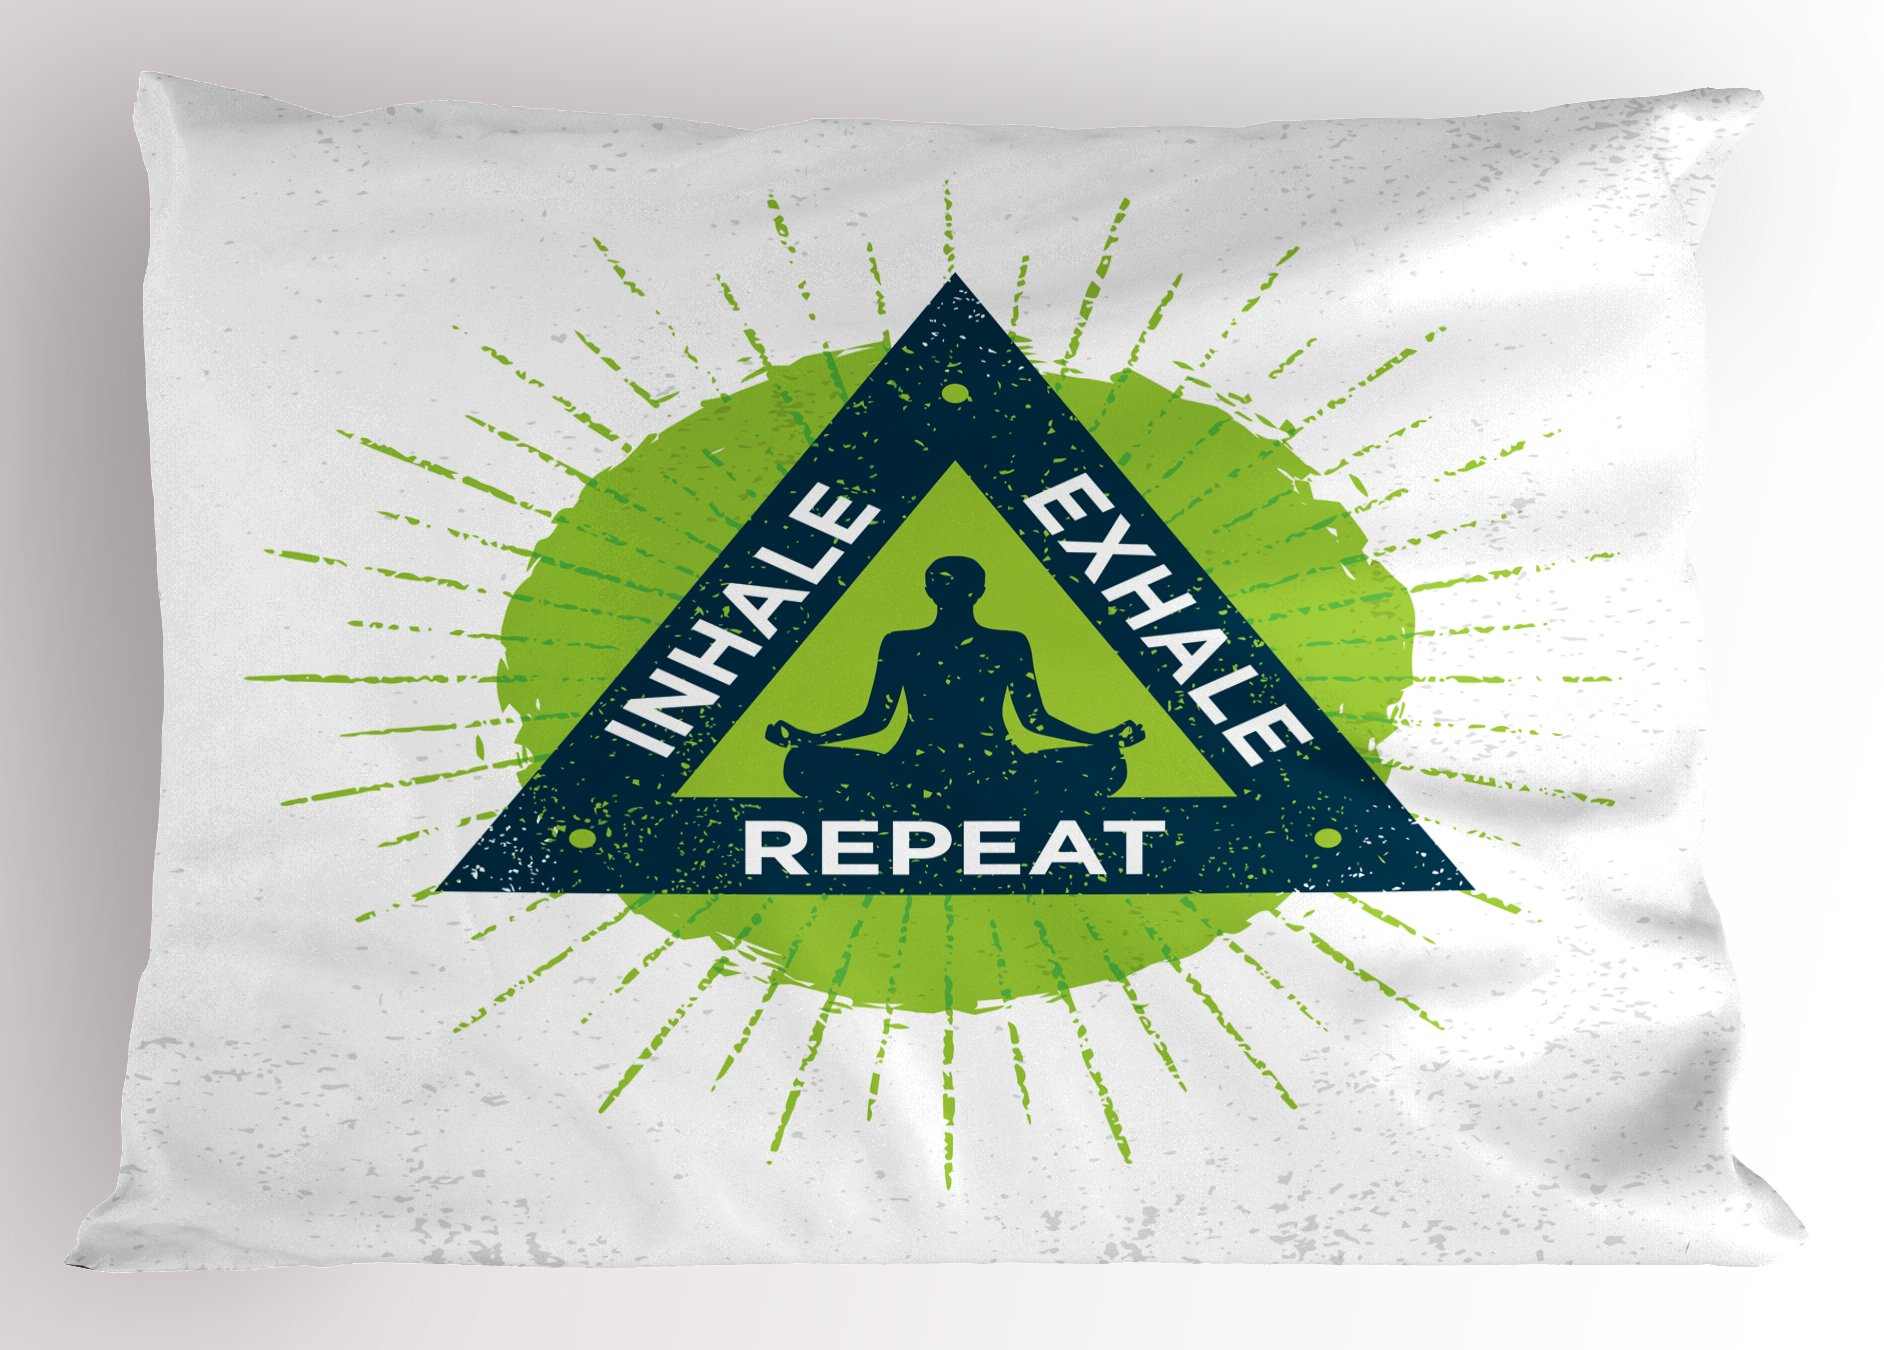 Ambesonne Inhale Exhale Pillow Sham, Spa Yoga Retreat Theme Meditating Woman Ancient Practice Philosophy, Decorative Standard King Size Printed Pillowcase, 36 X 20 inches, Lime Green Dark Blue